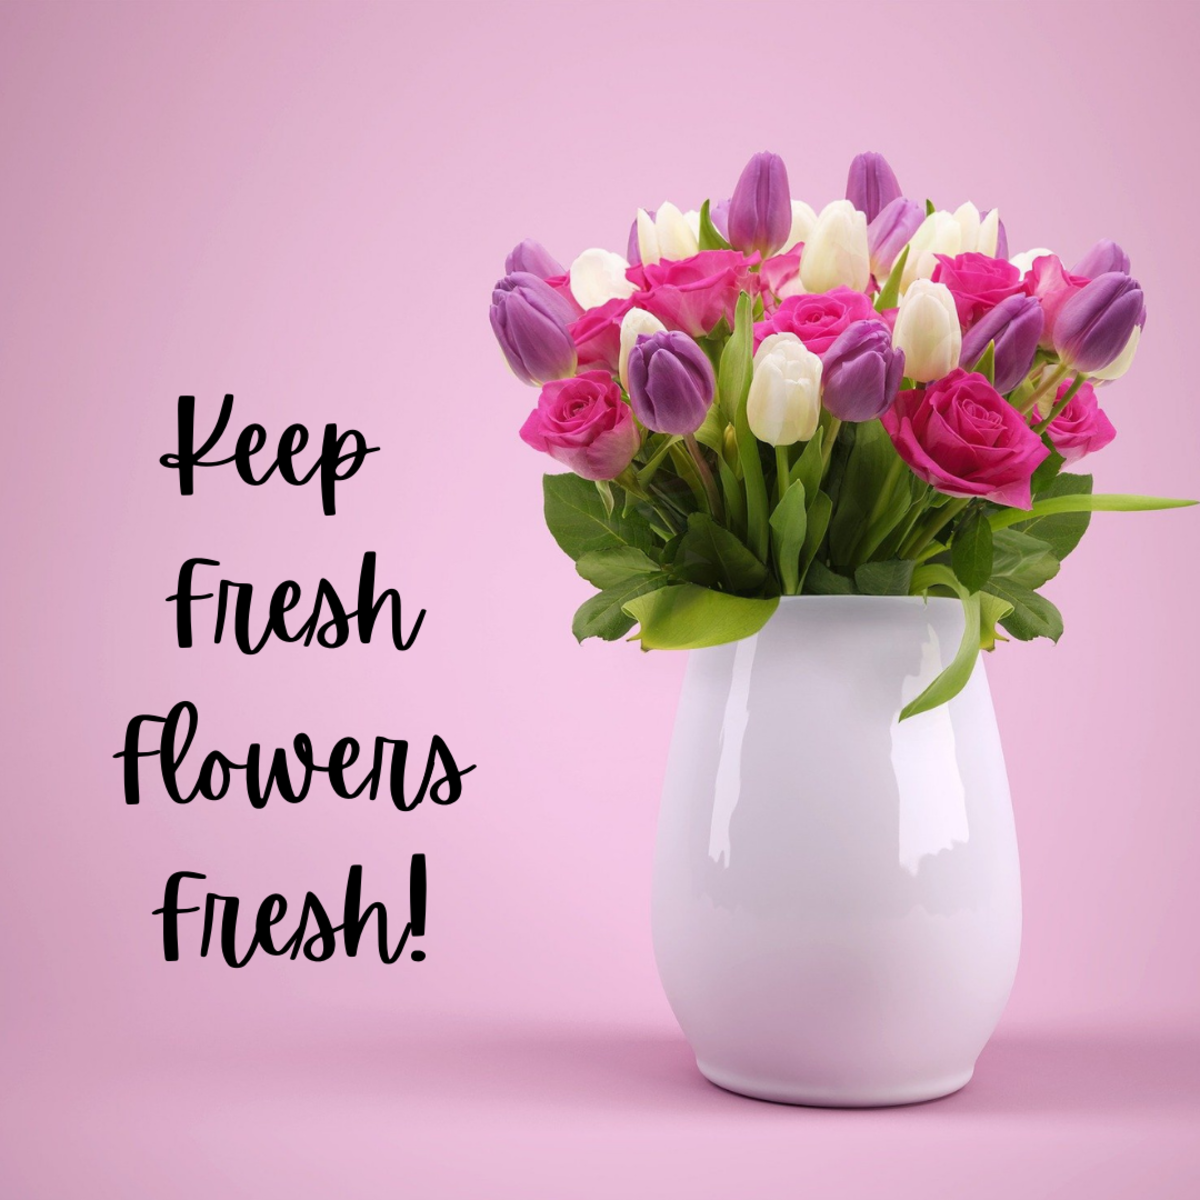 Your fresh flowers will last longer with these six easy tips.